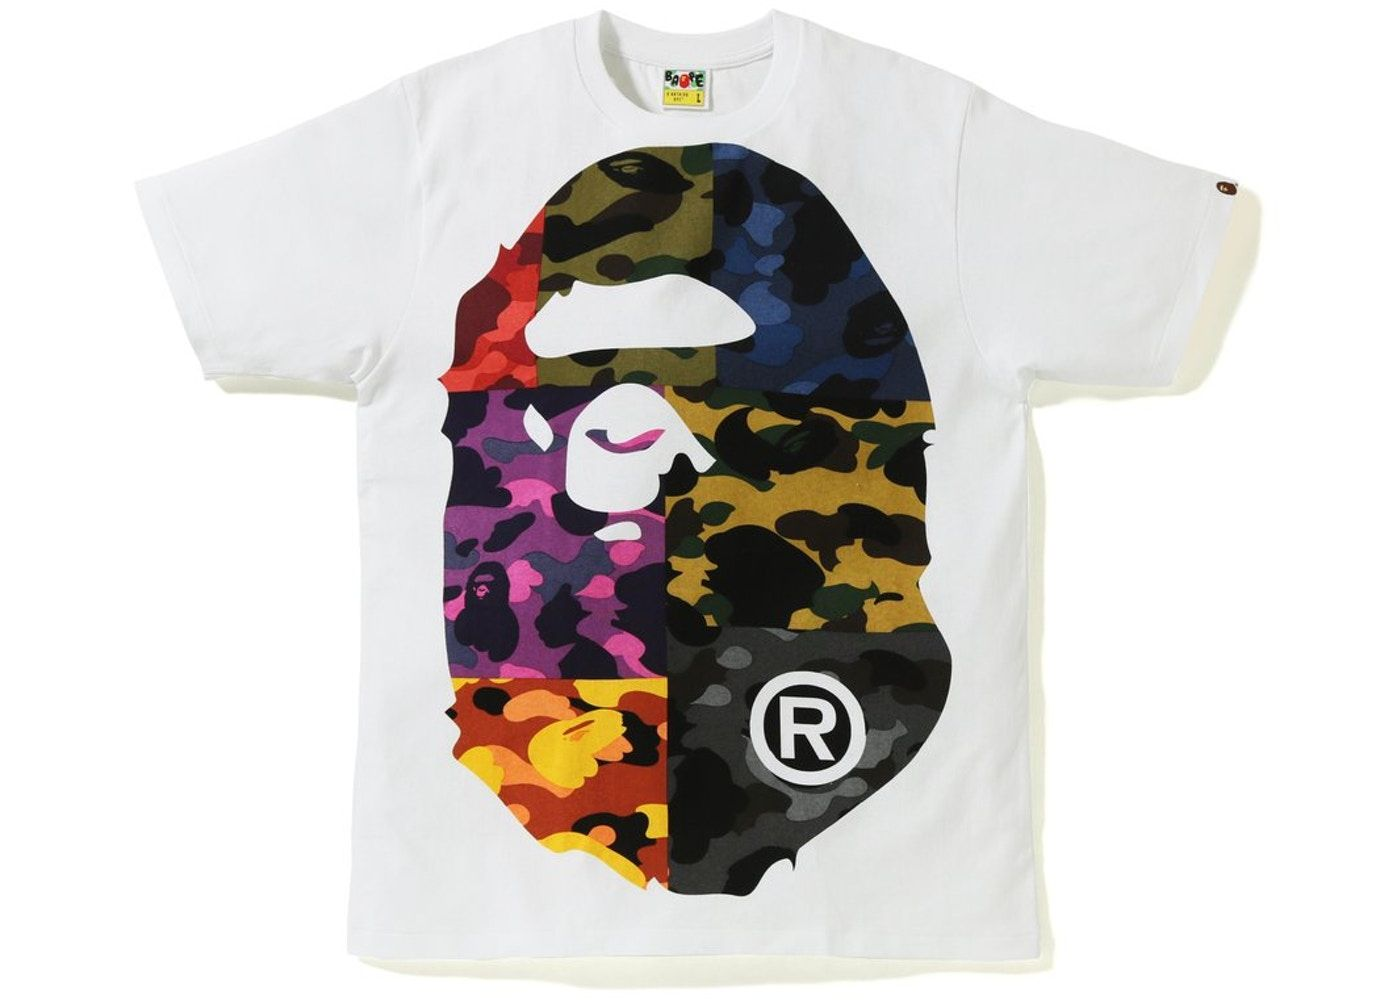 b985eeb6 BAPE Mix Camo Big Big Ape Head Tee White in 2019 | Shirts | Bape ...